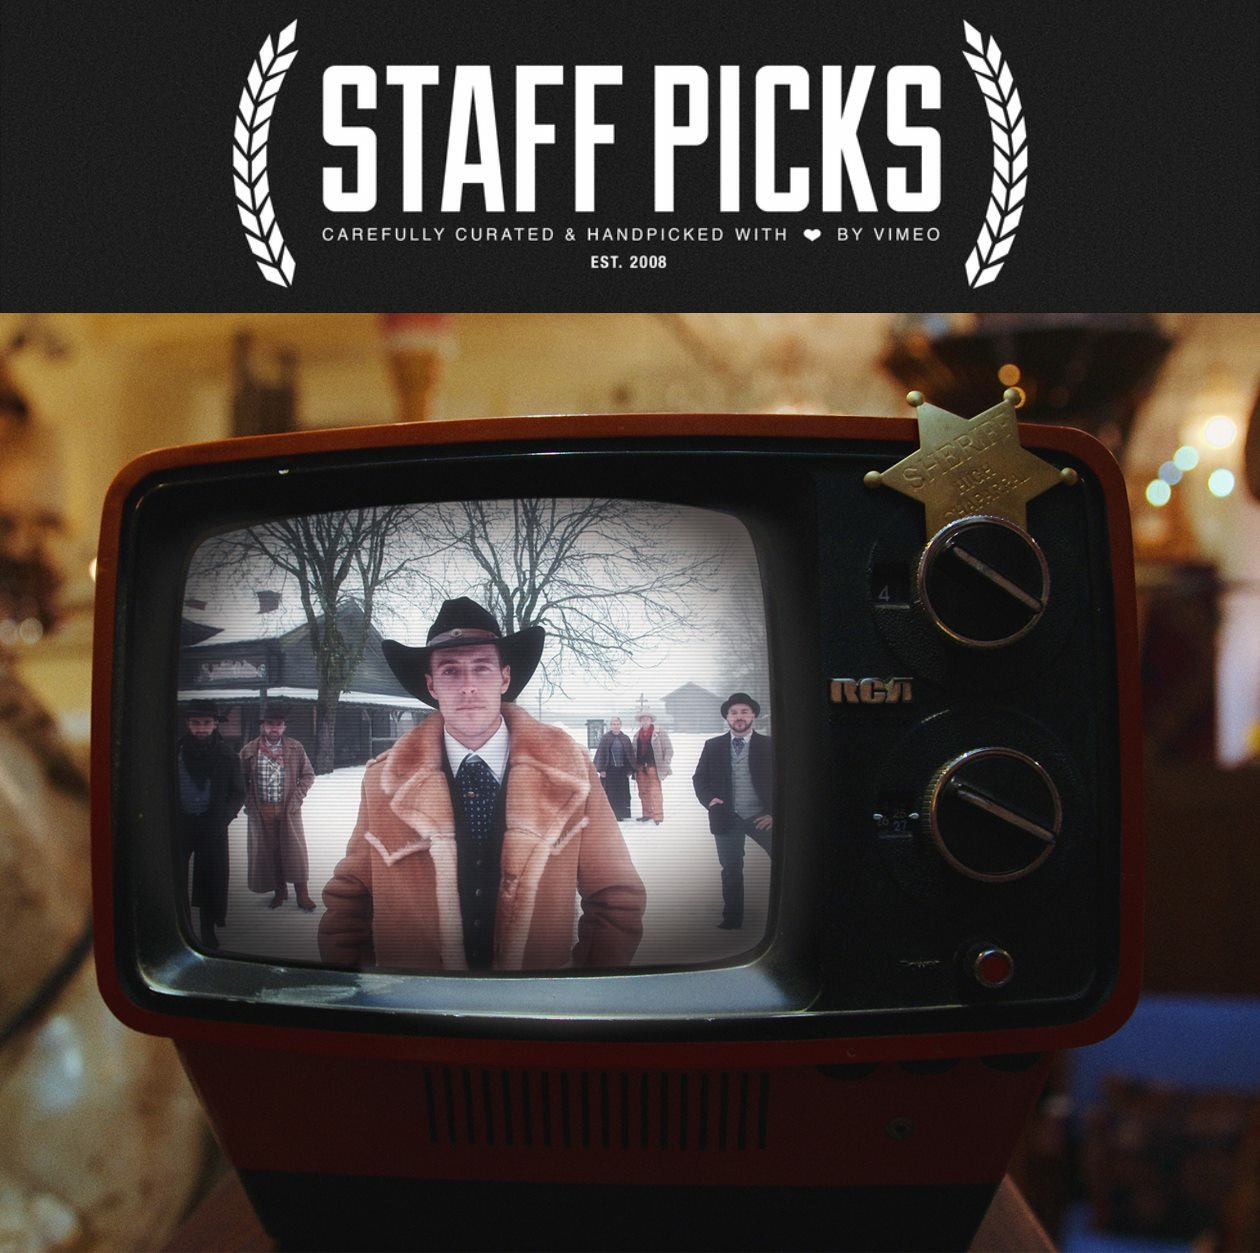 """Mel films' """"Return To High Chaparral"""" wins Vimeo Staff Pick of the Week, as well as short of the week."""